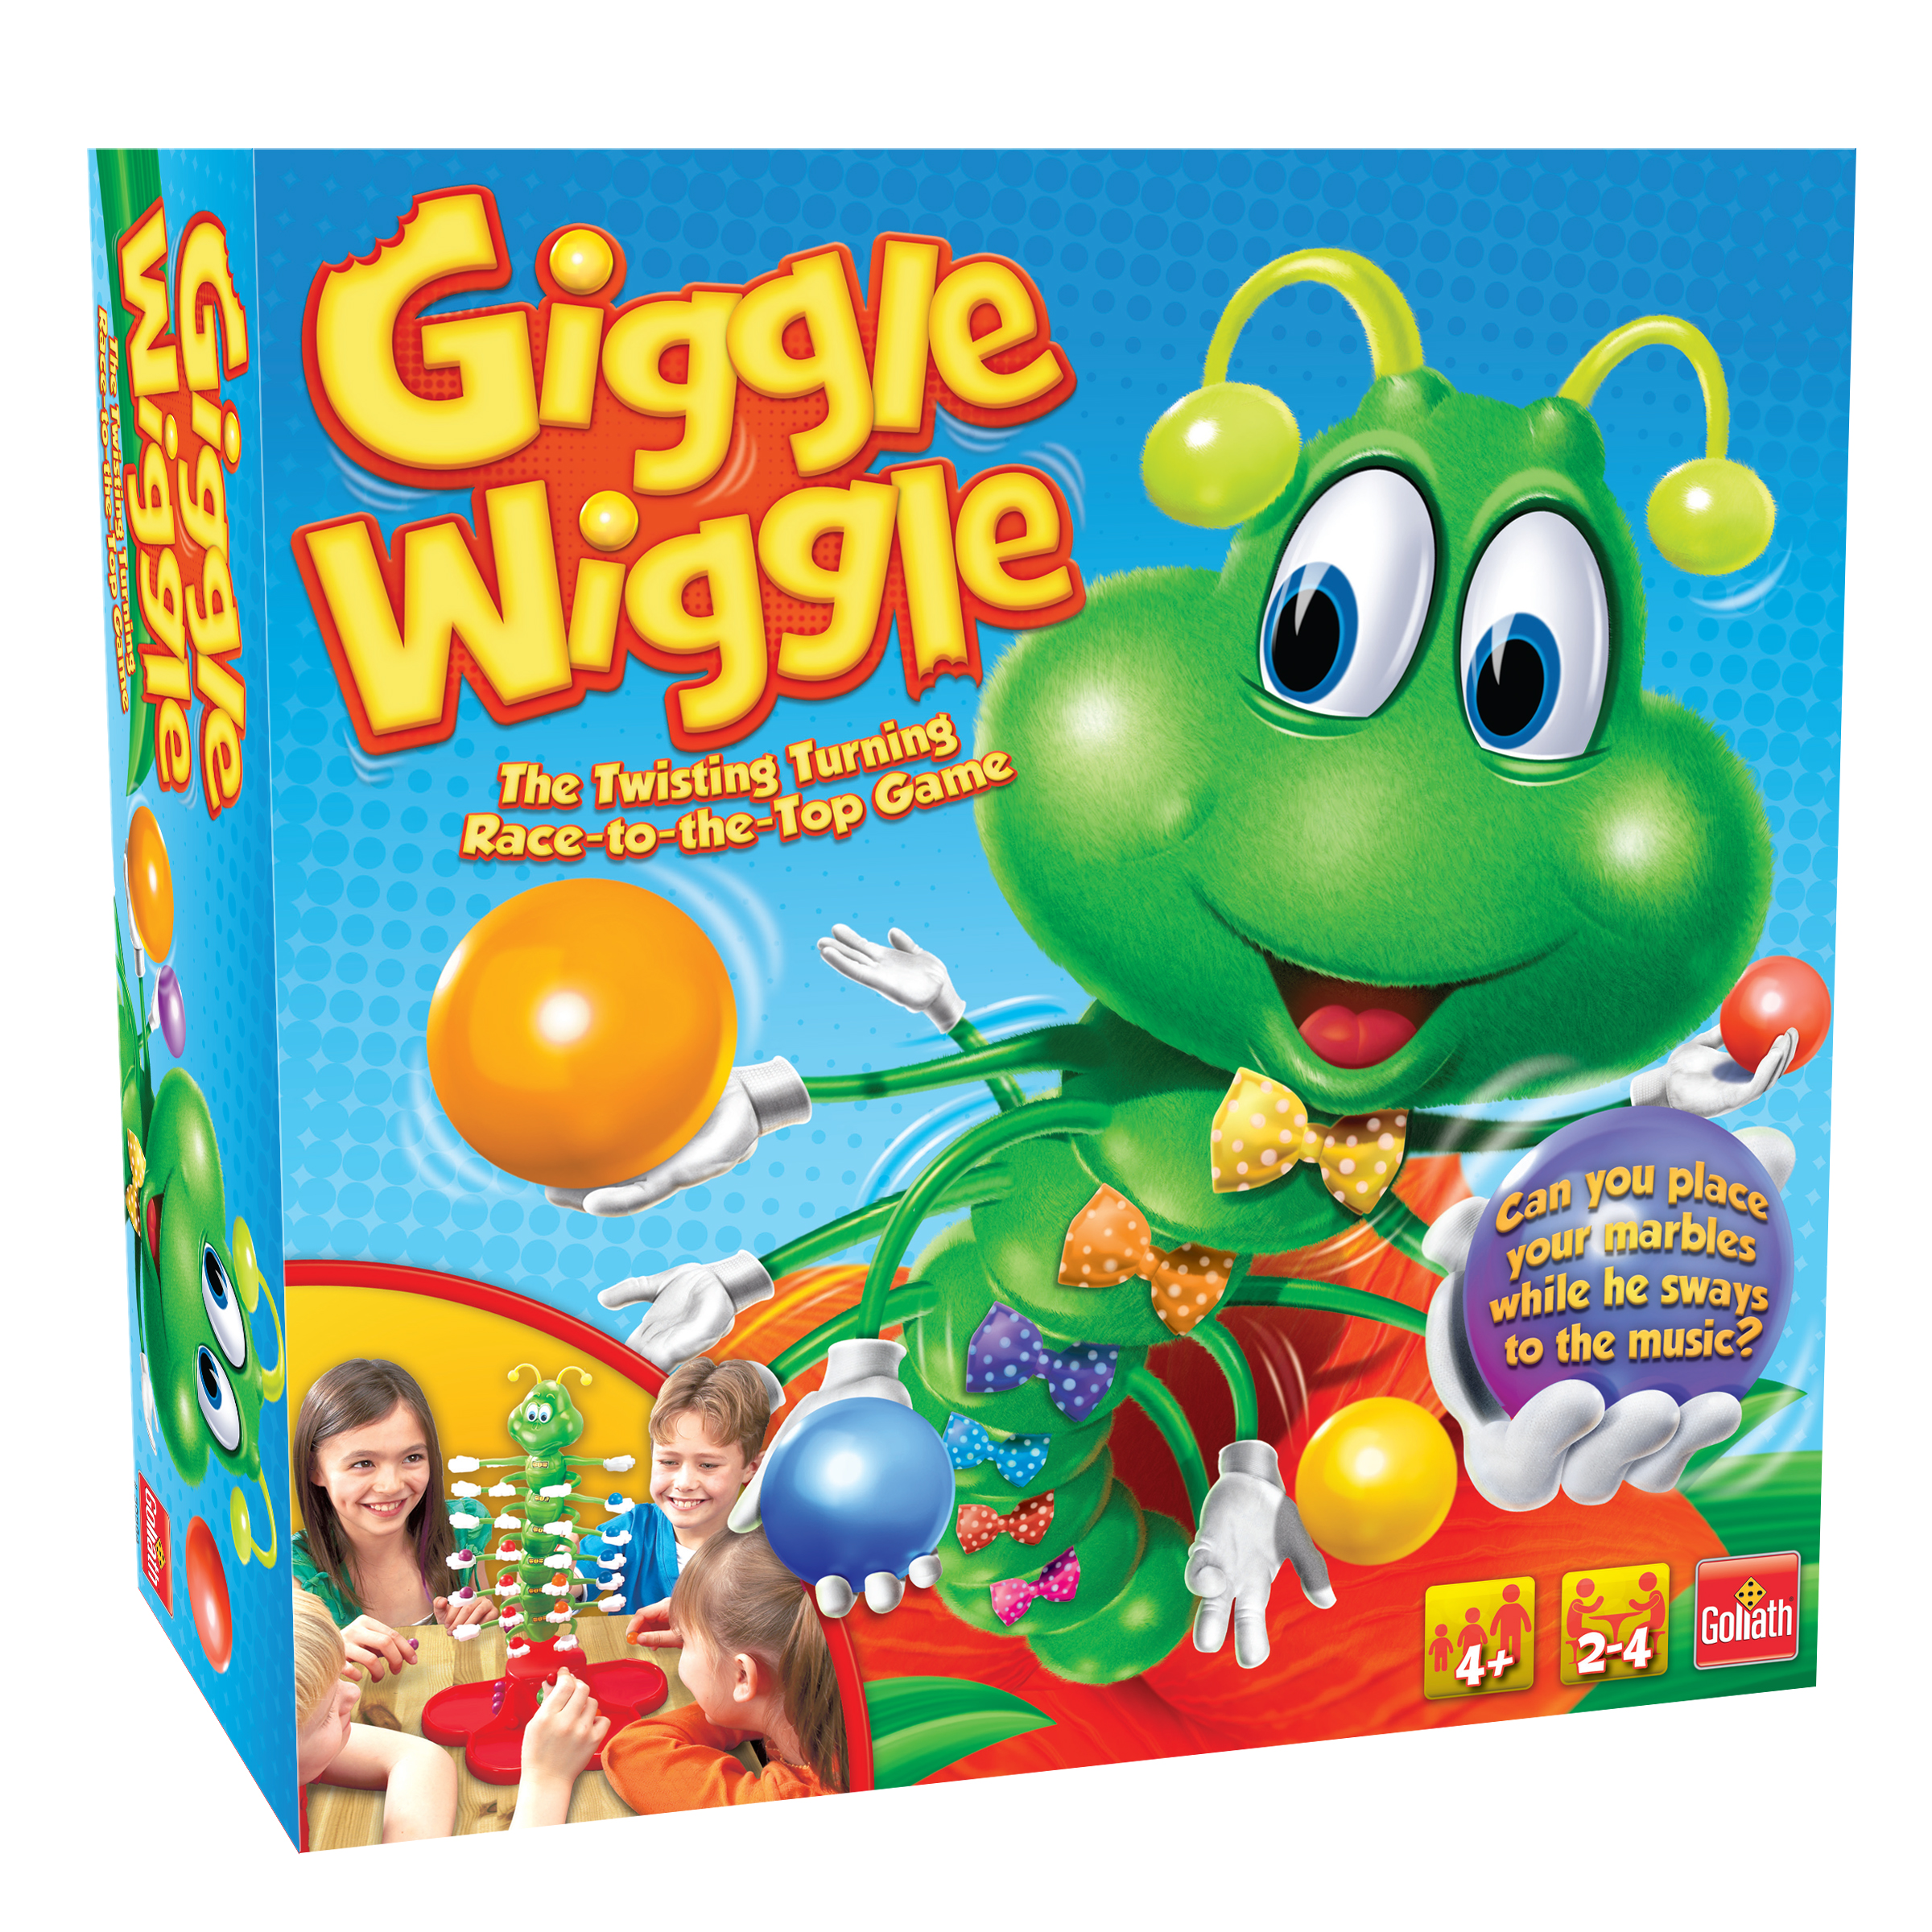 Giggle Wiggle Kids Game Ages 4 and Up by Goliath Games